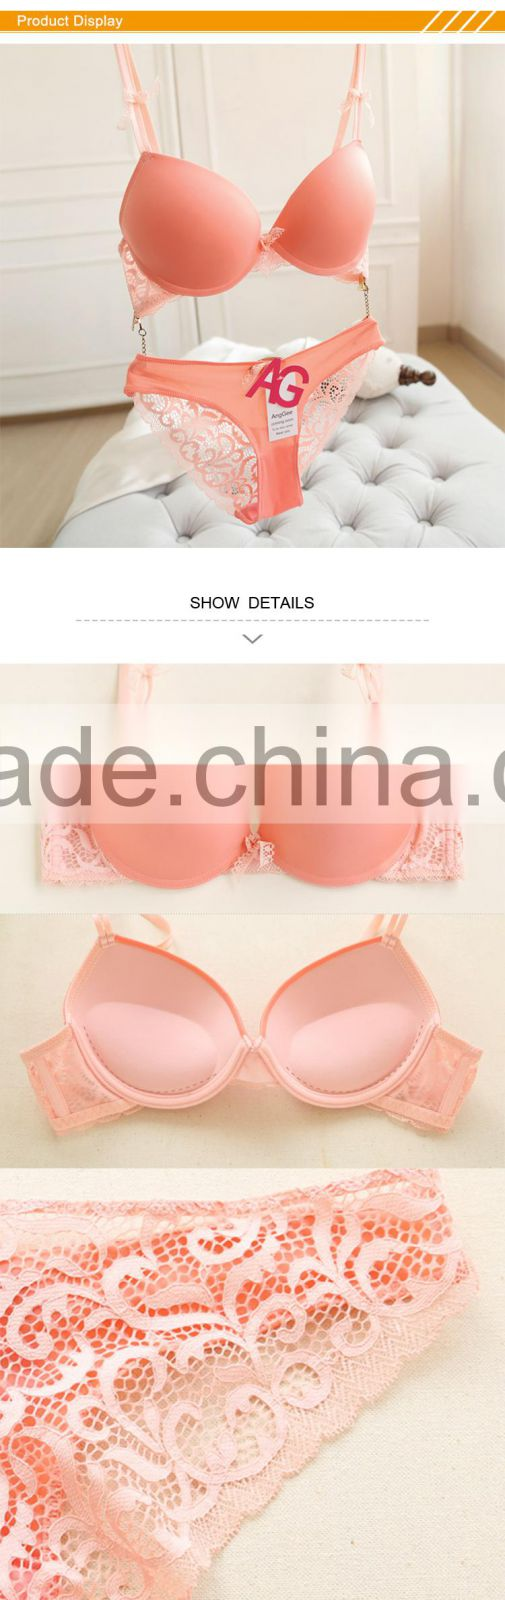 5264eac33b HSZ-5001 Wholesale High Quality Women Underwear Pink Sexy Fancy Bra Panty  Set for Women ...